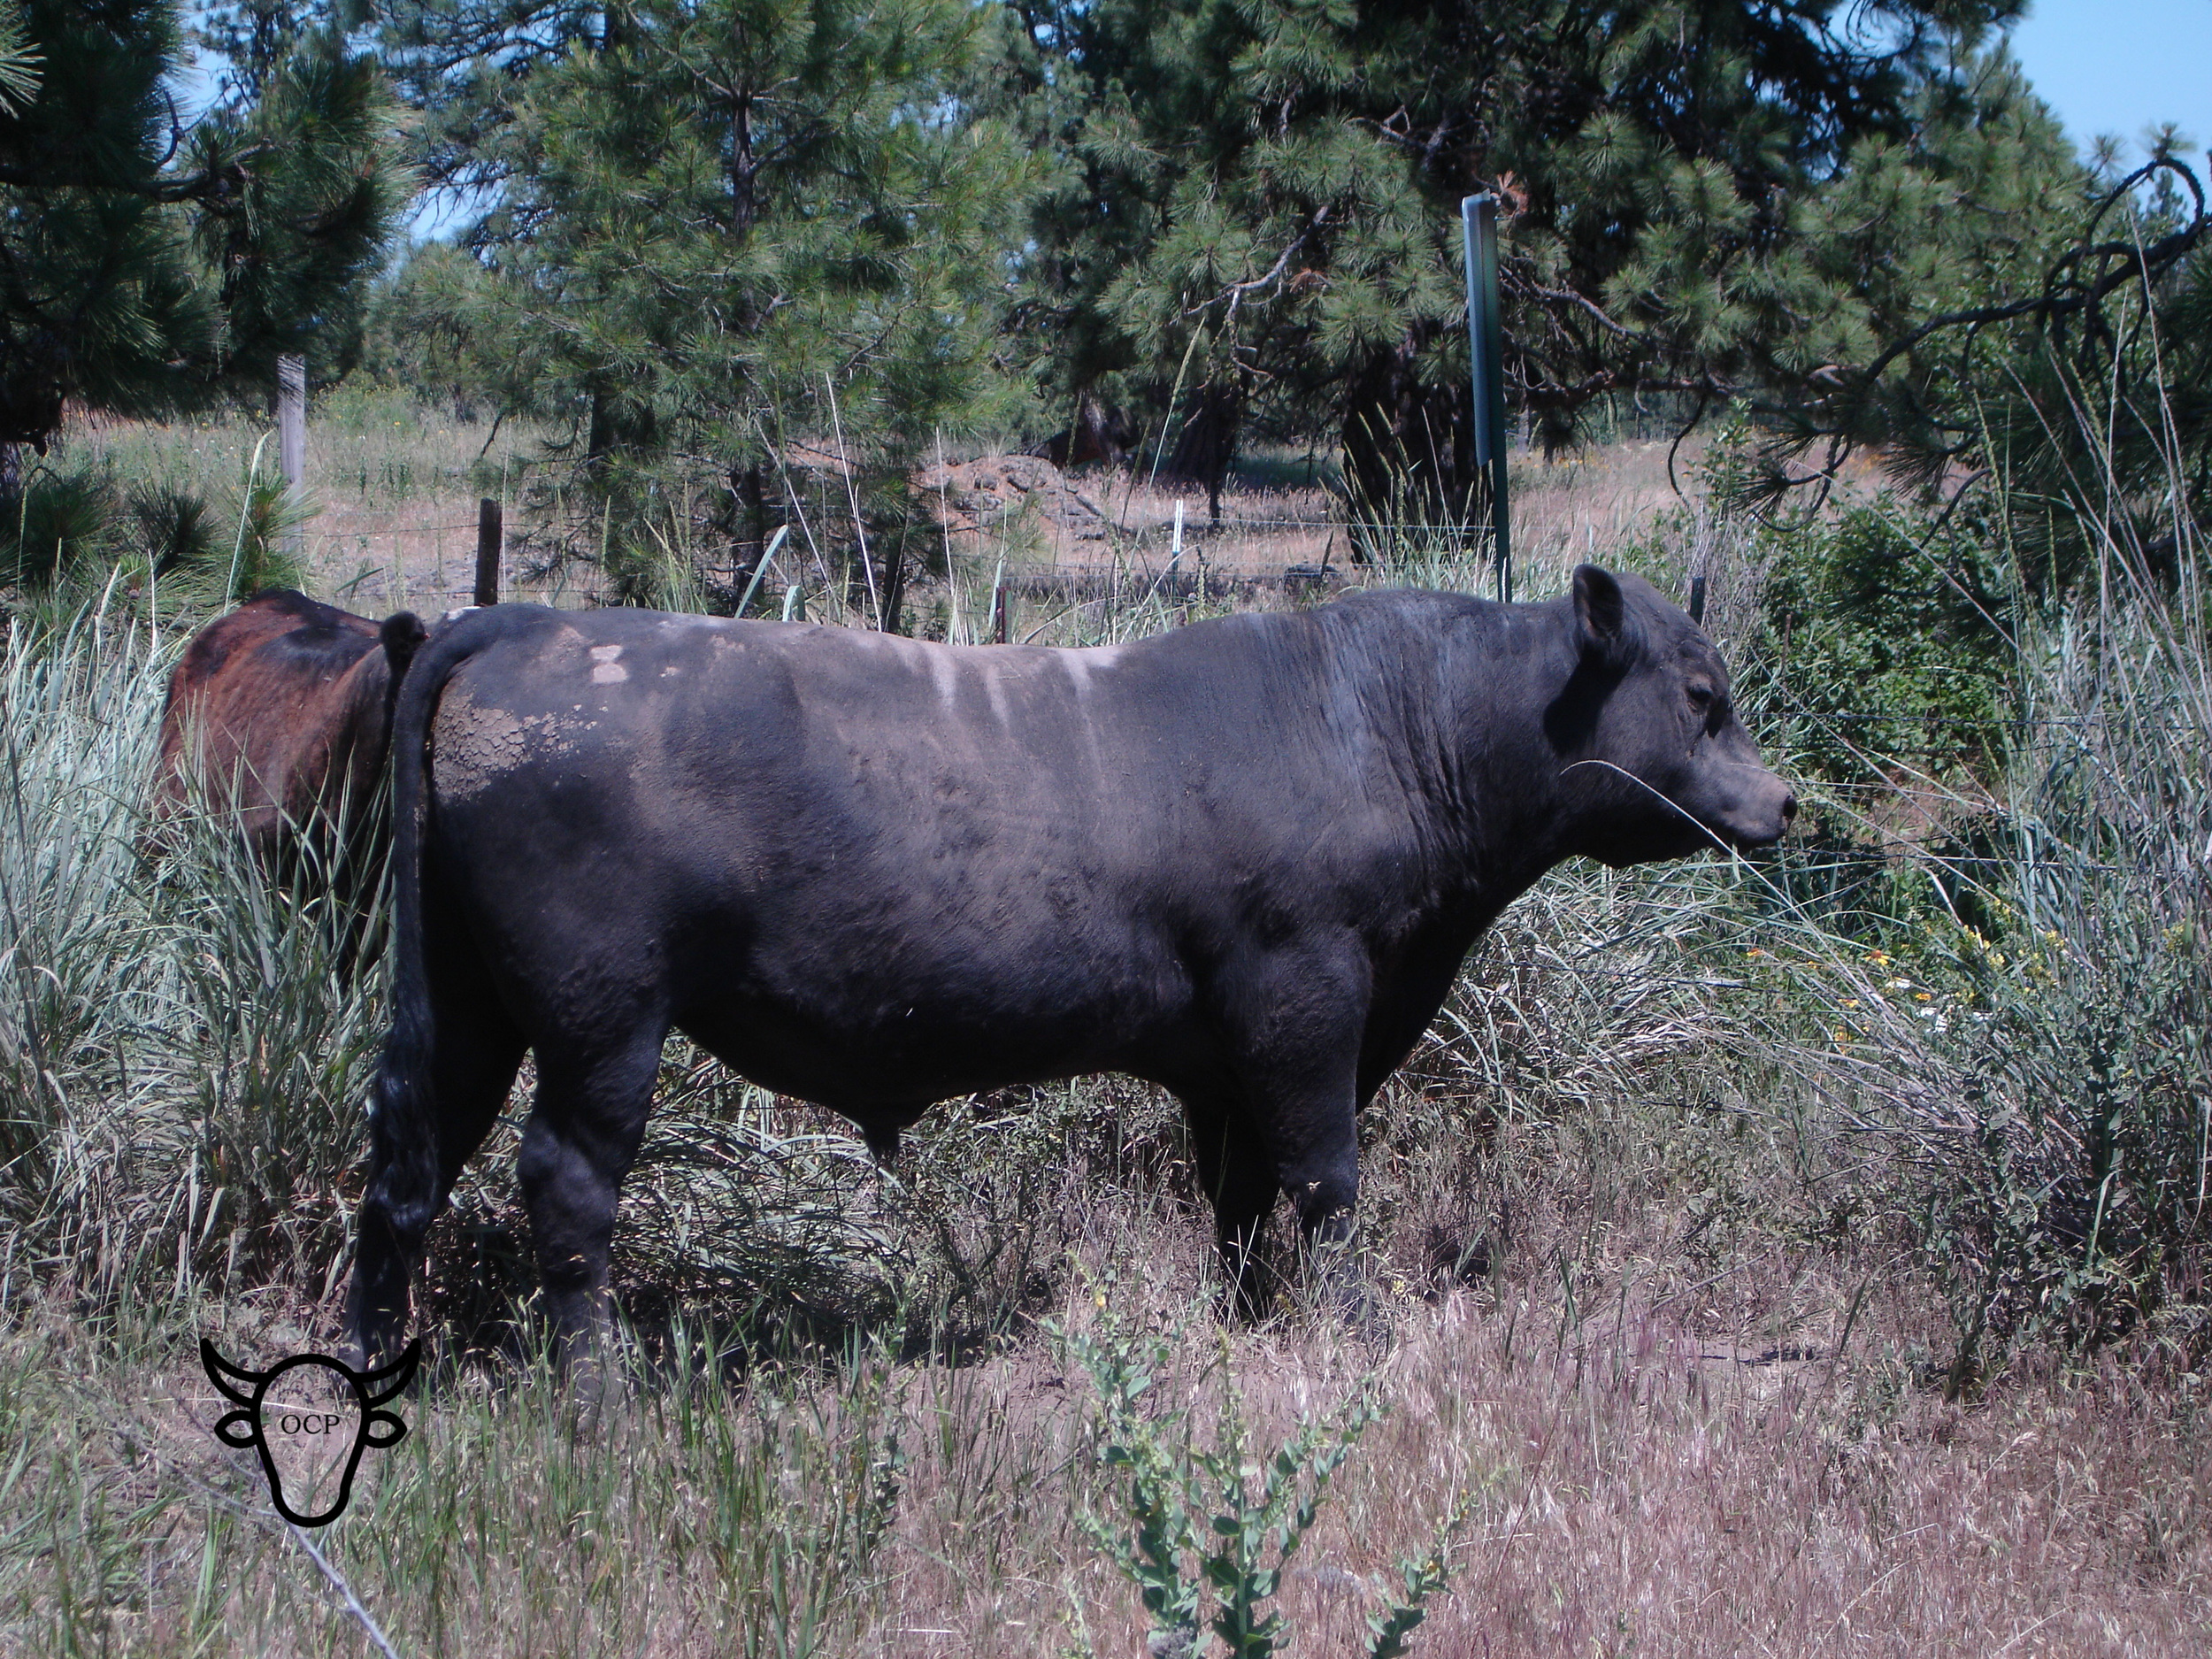 Noble, BK 0100 Confidence, and grandson of the great Conneally Confidence, is a gentle giant. His heifers in our herd have proven fertile and are great mothers. He is still working for commercial herds. -